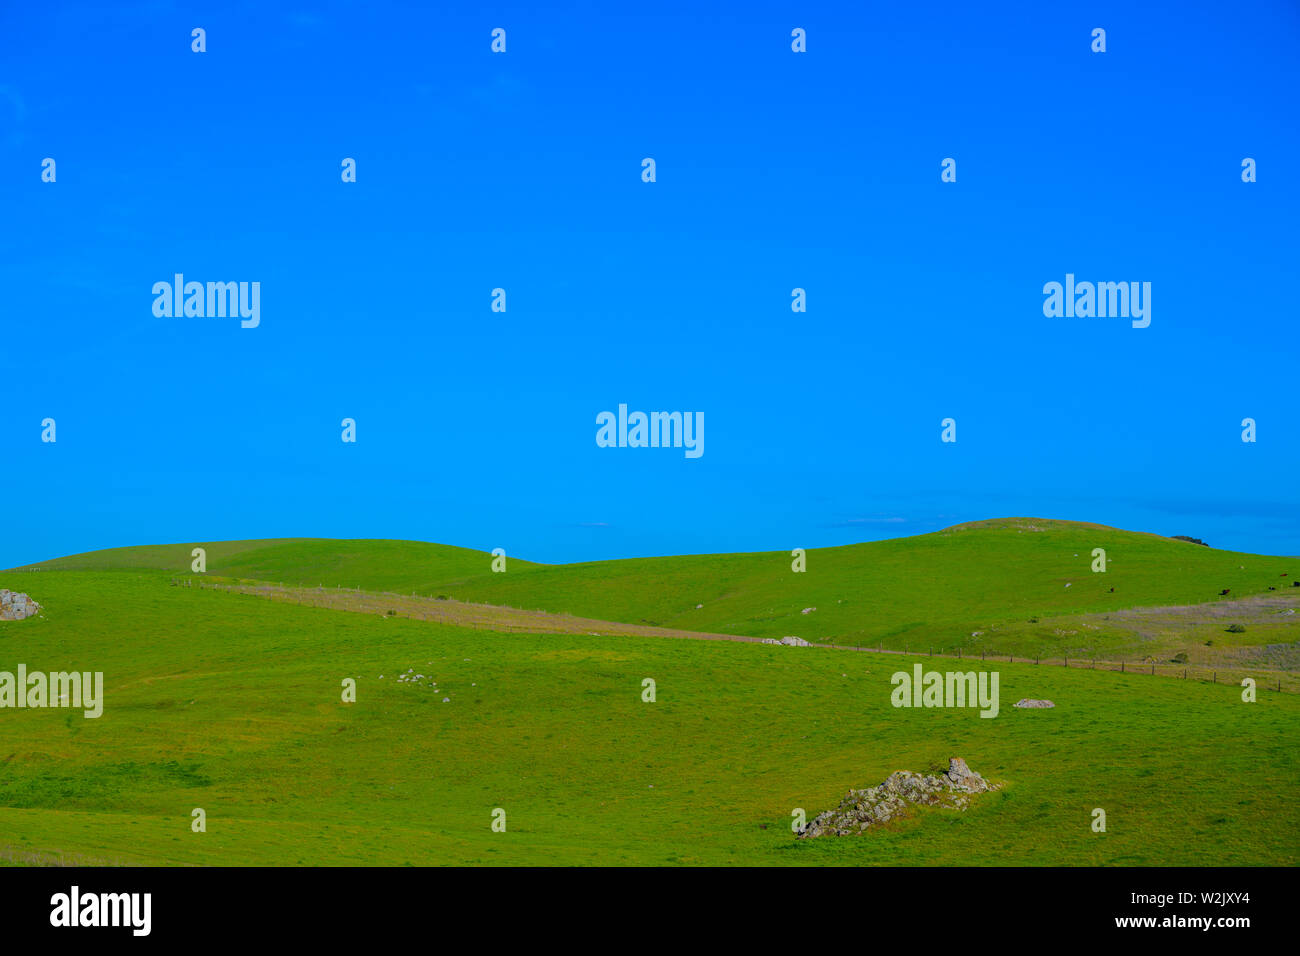 Meadow with beautiful blue sky background with copy space Stock Photo